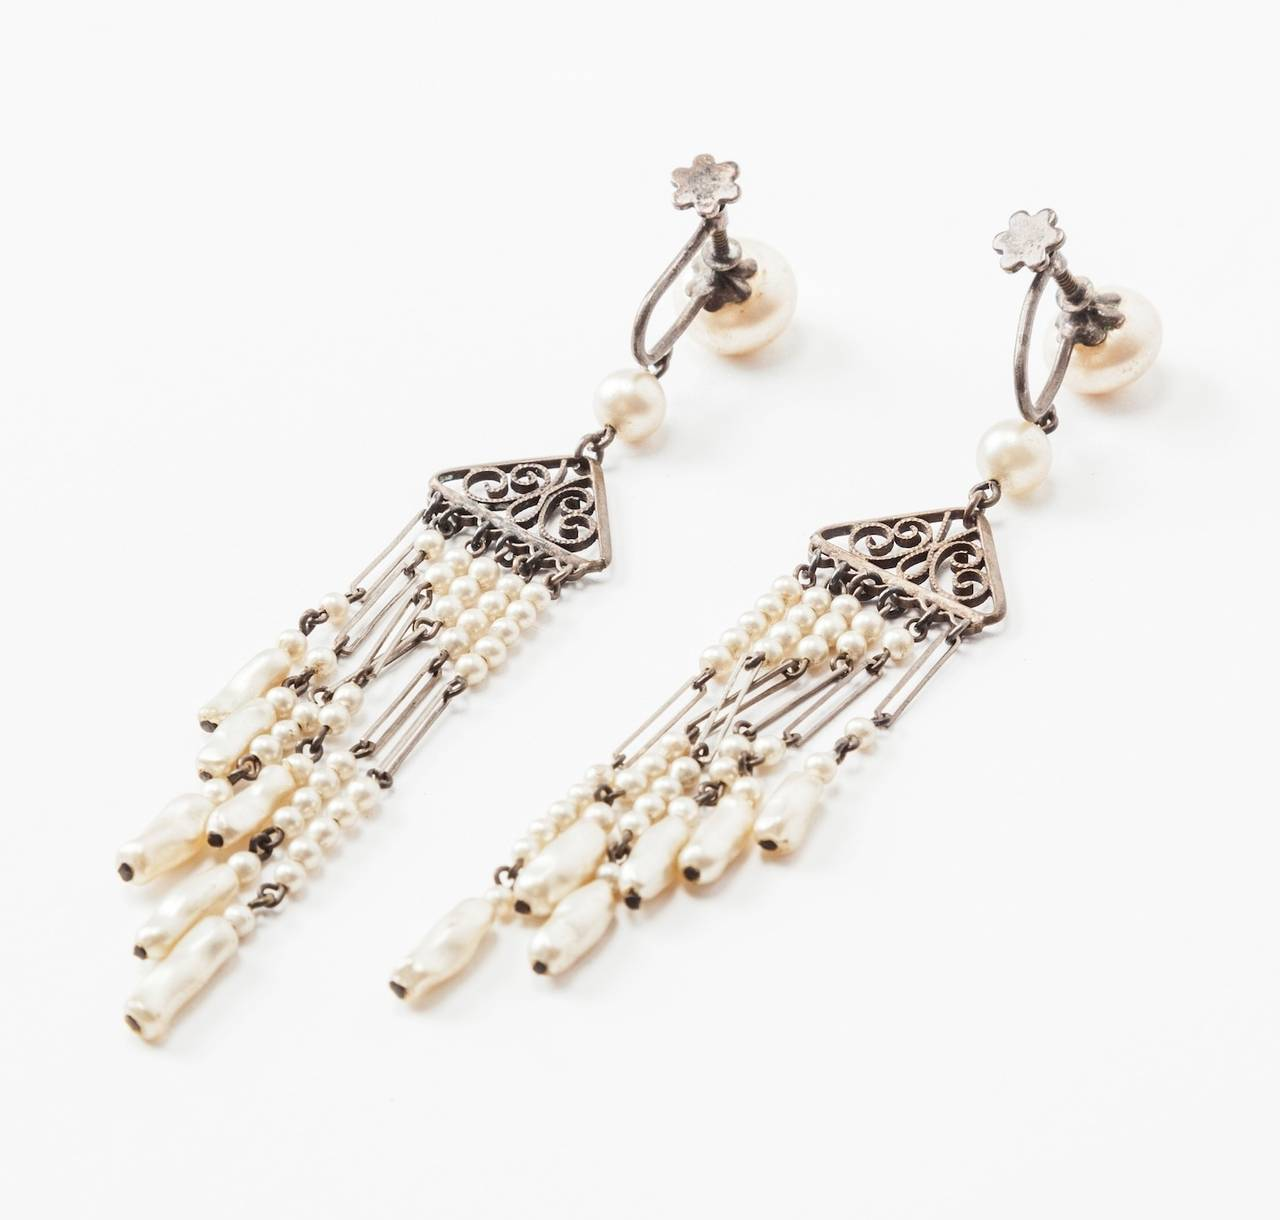 Delicate Art Deco faux pearl fringe earrings with filigree stations. Nicely detailed with both smooth and baroque faux pearls. 1920's USA. Sterling screw back fittings. Excellent condition.